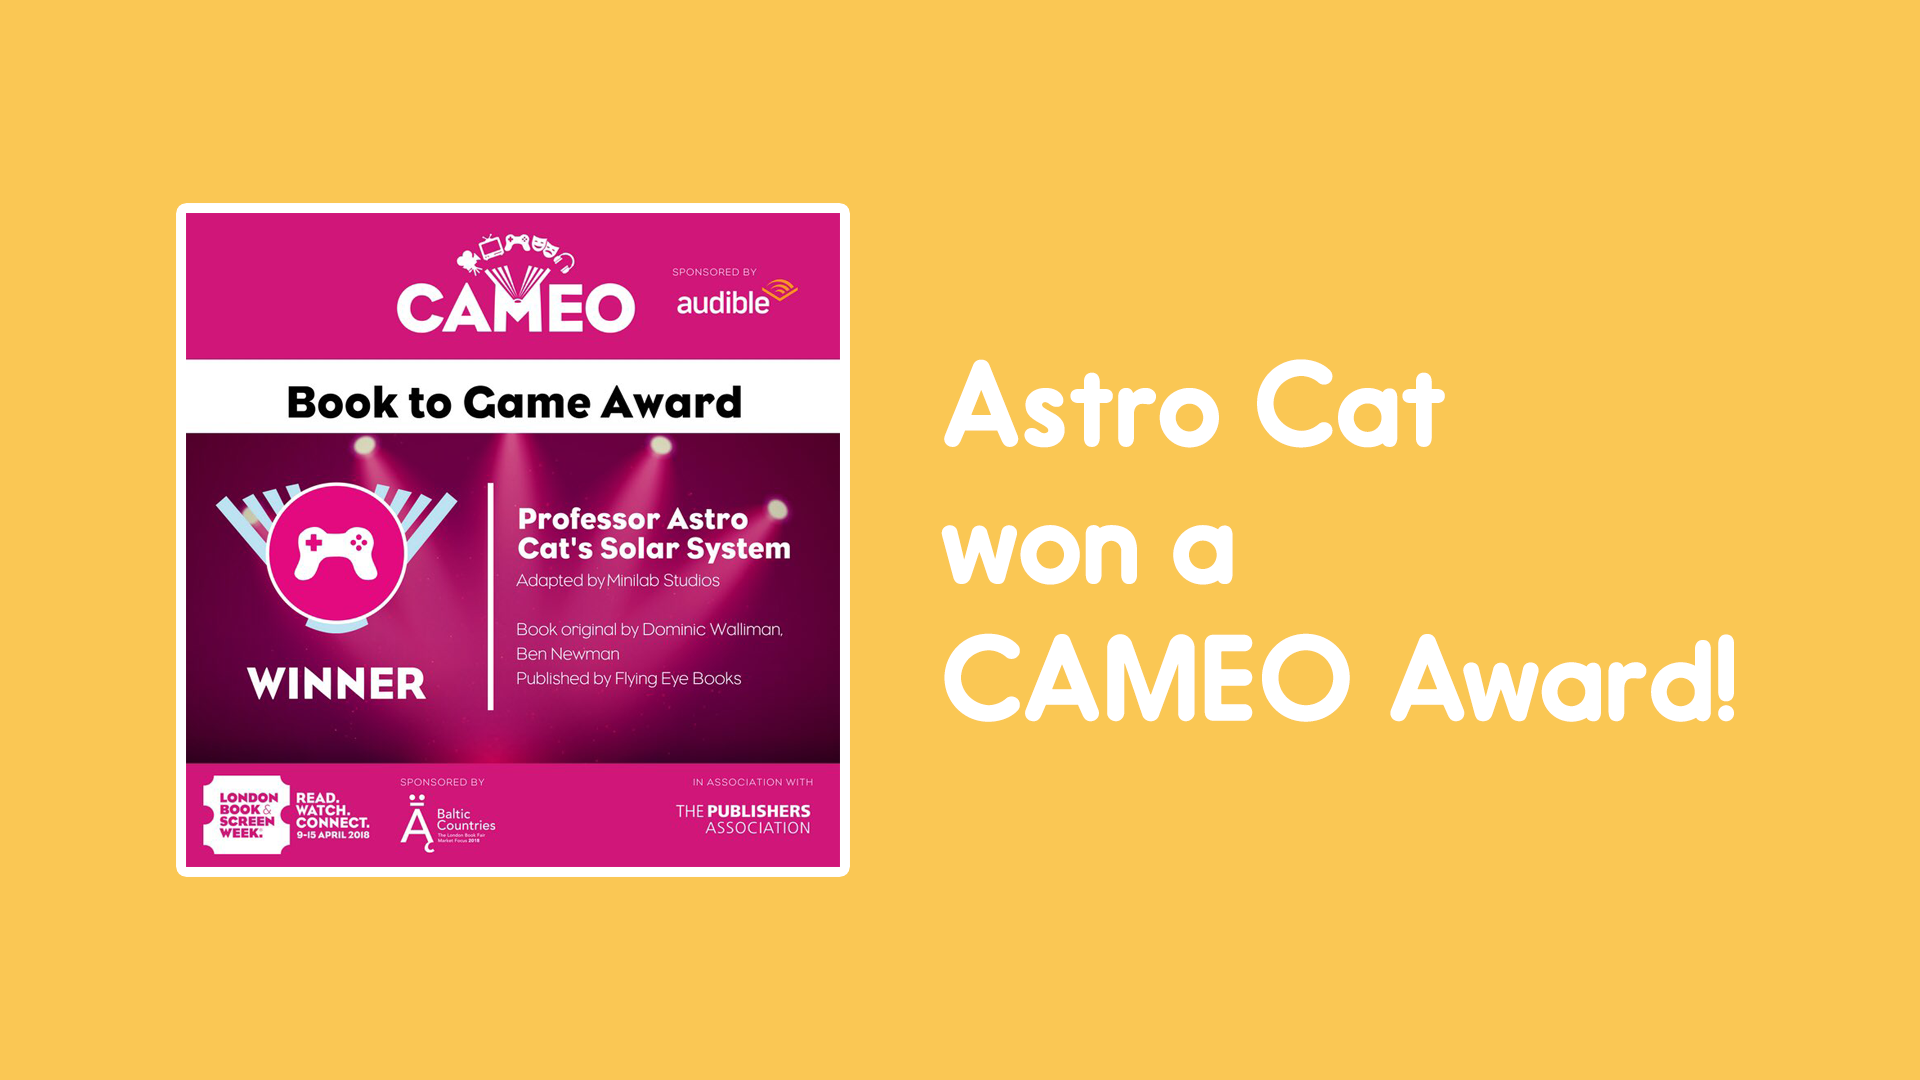 CAMEO award Astro Cat